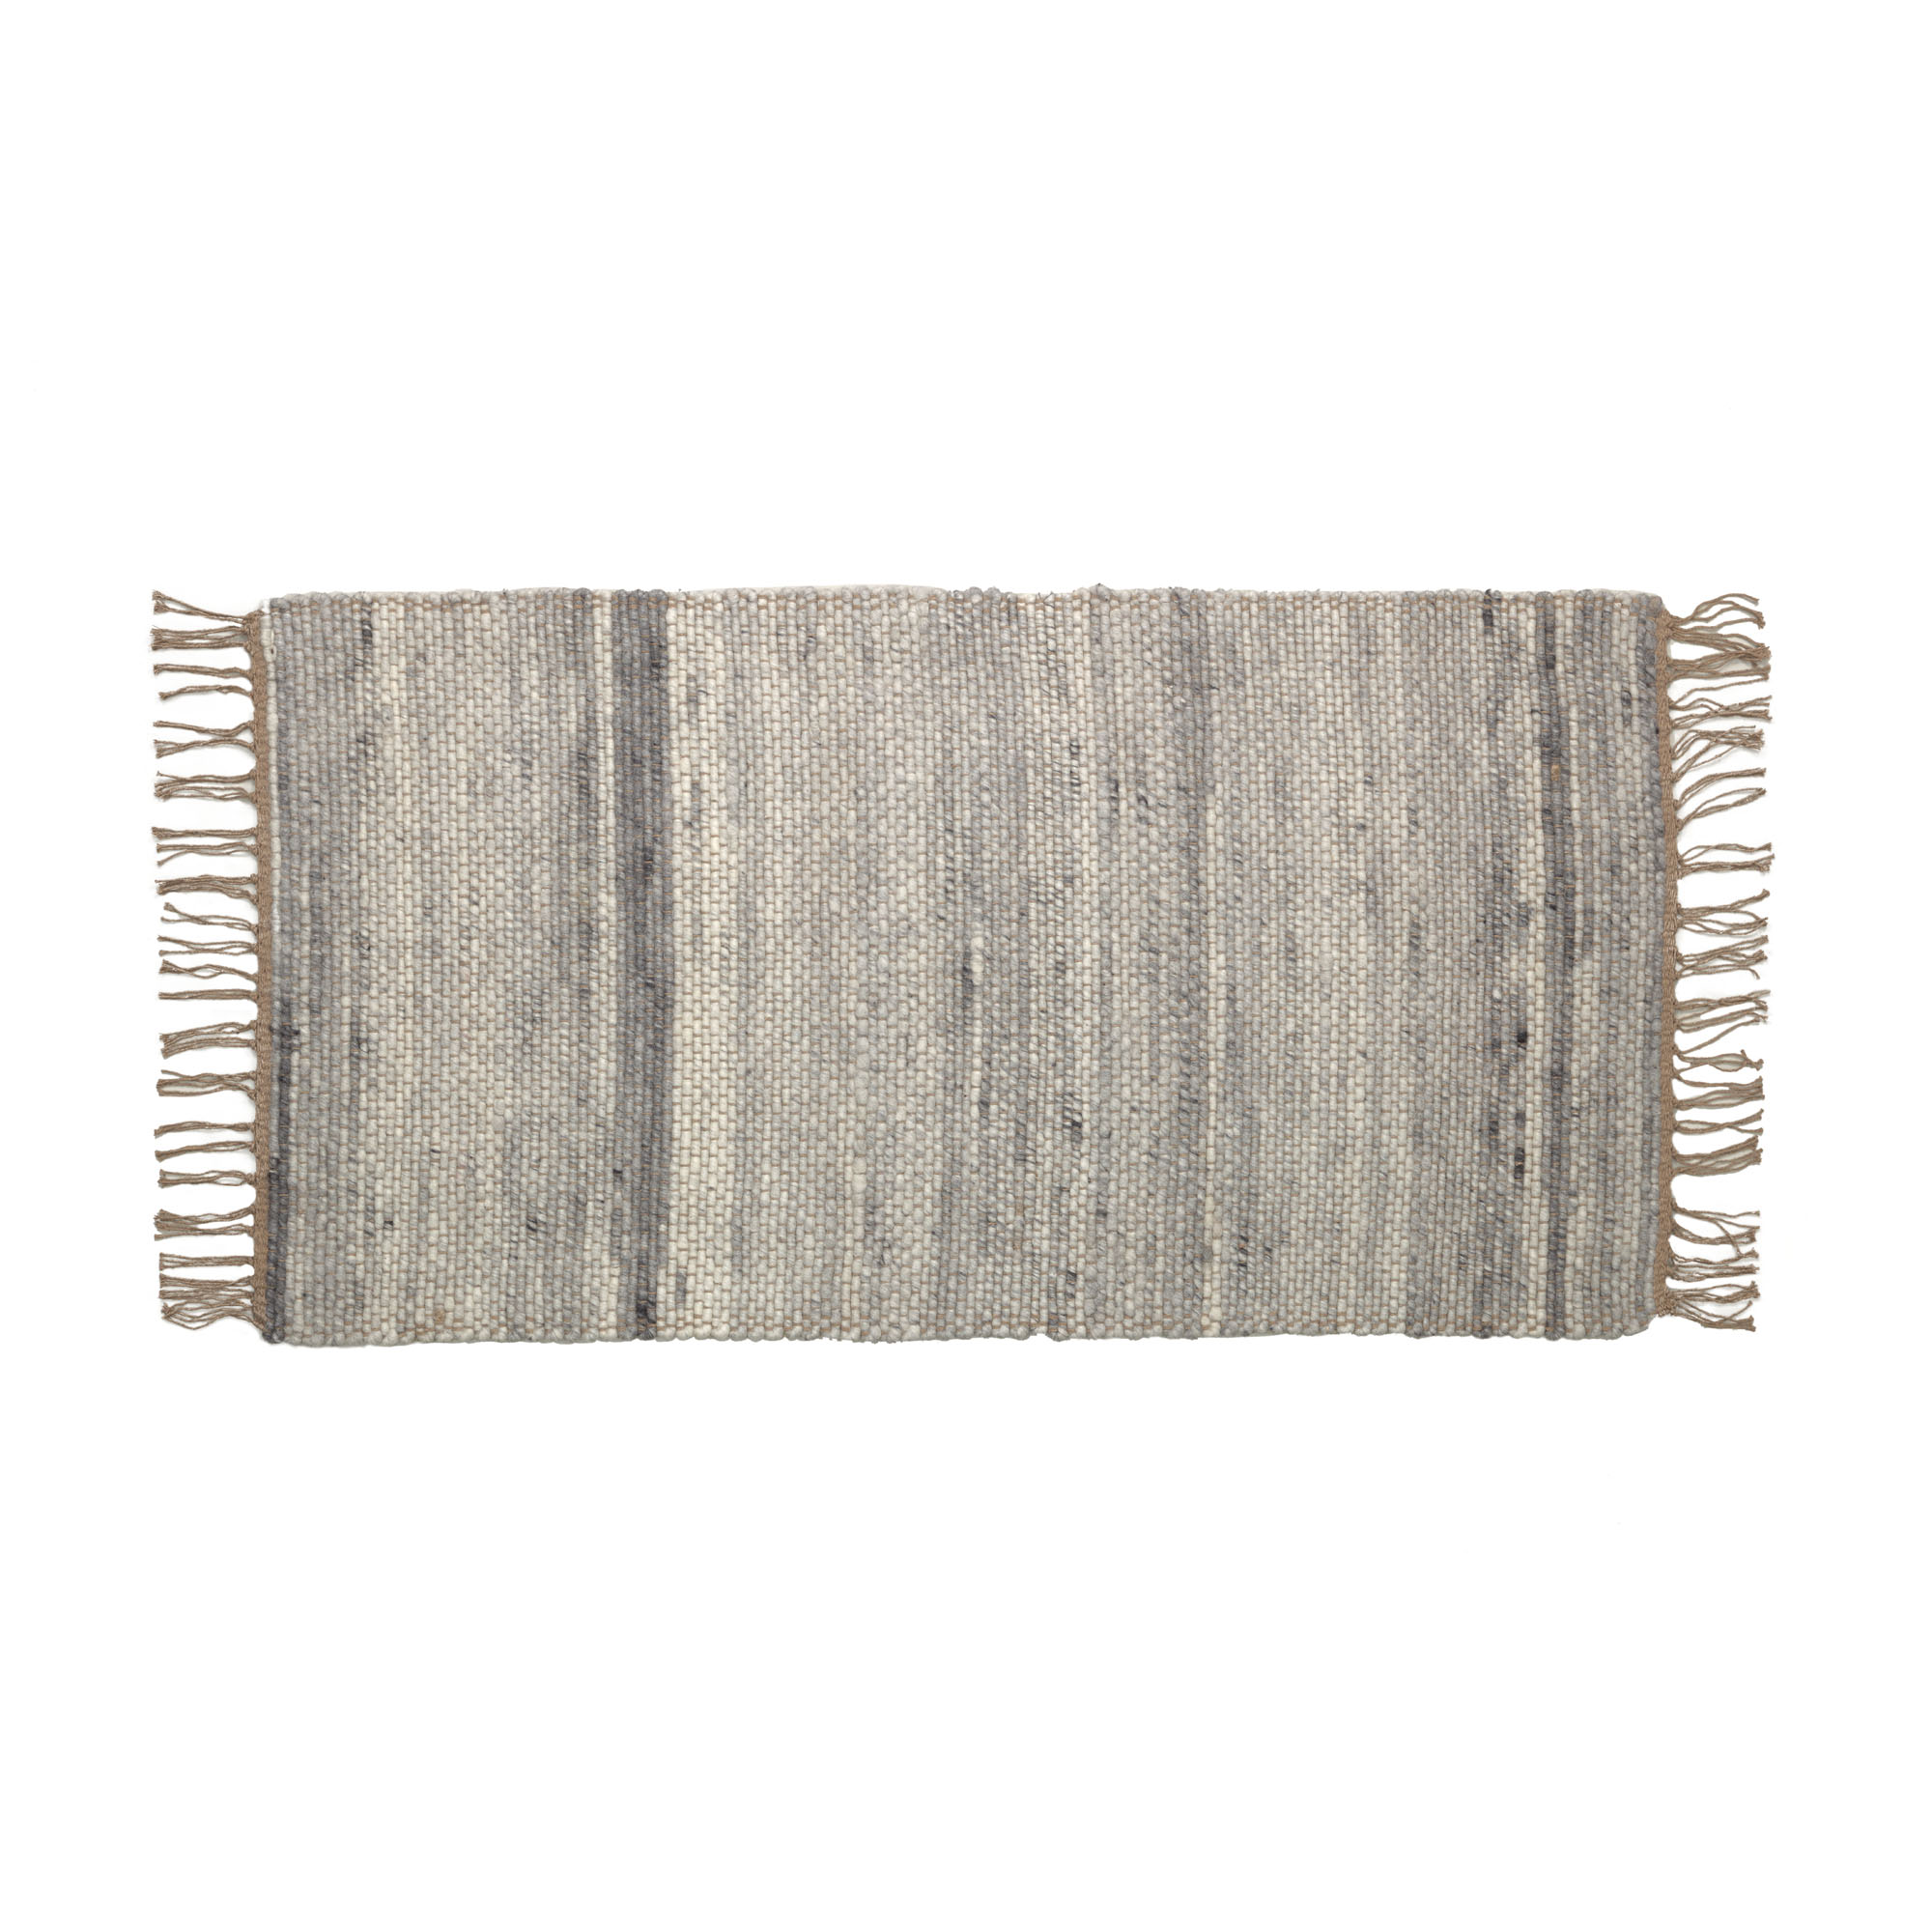 Kave home - tapis paolina 160 x 230 cm gris